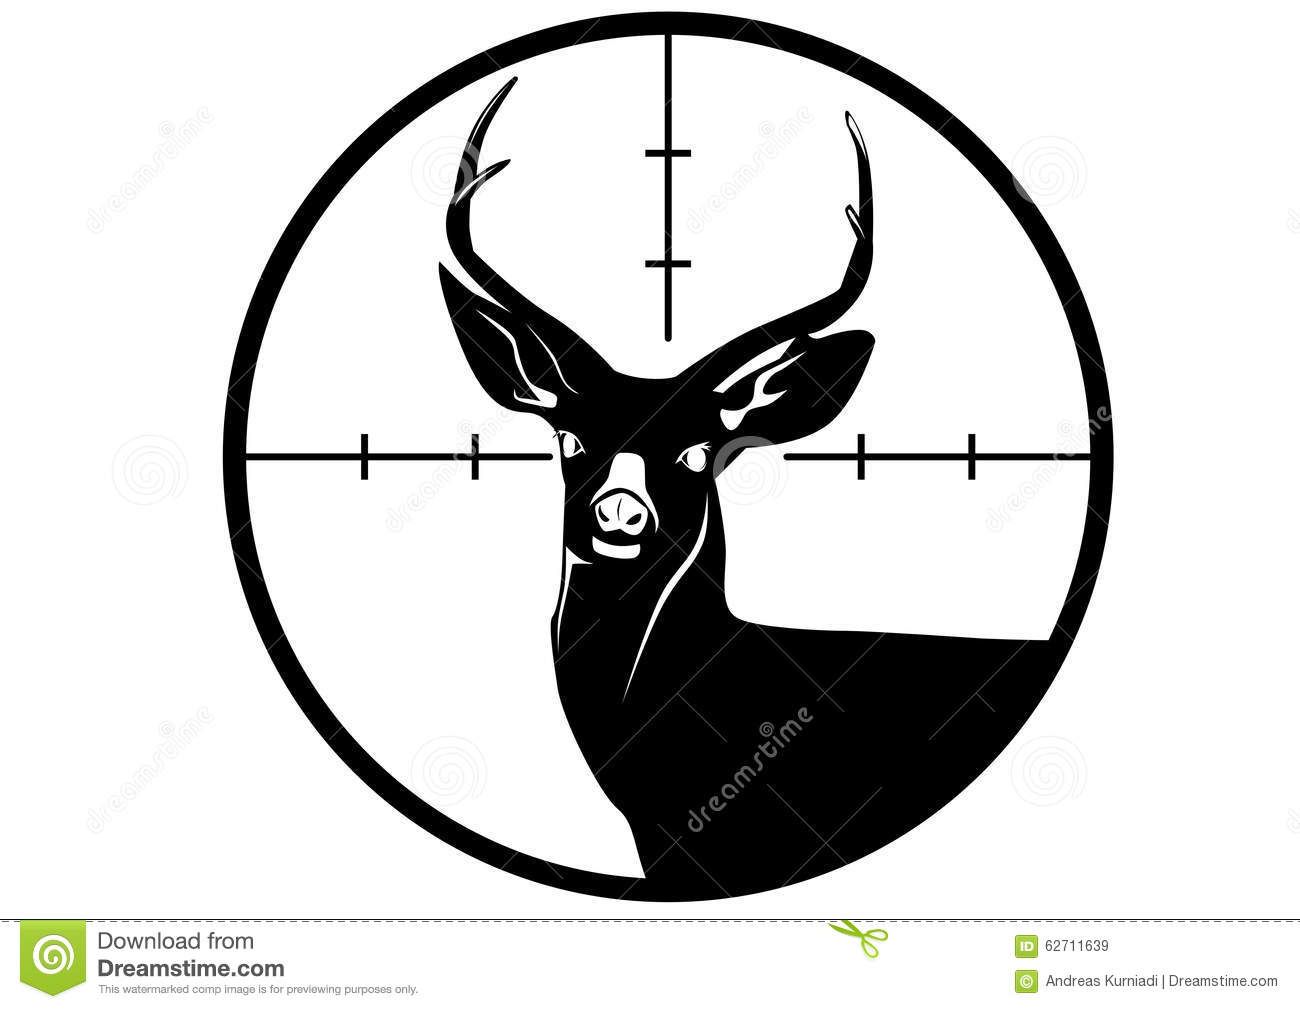 deer hunt hunting logo stock vector image 62711639 Bullseye Free Clip Art Four Rings Bullseye Free Clip Art Four Rings